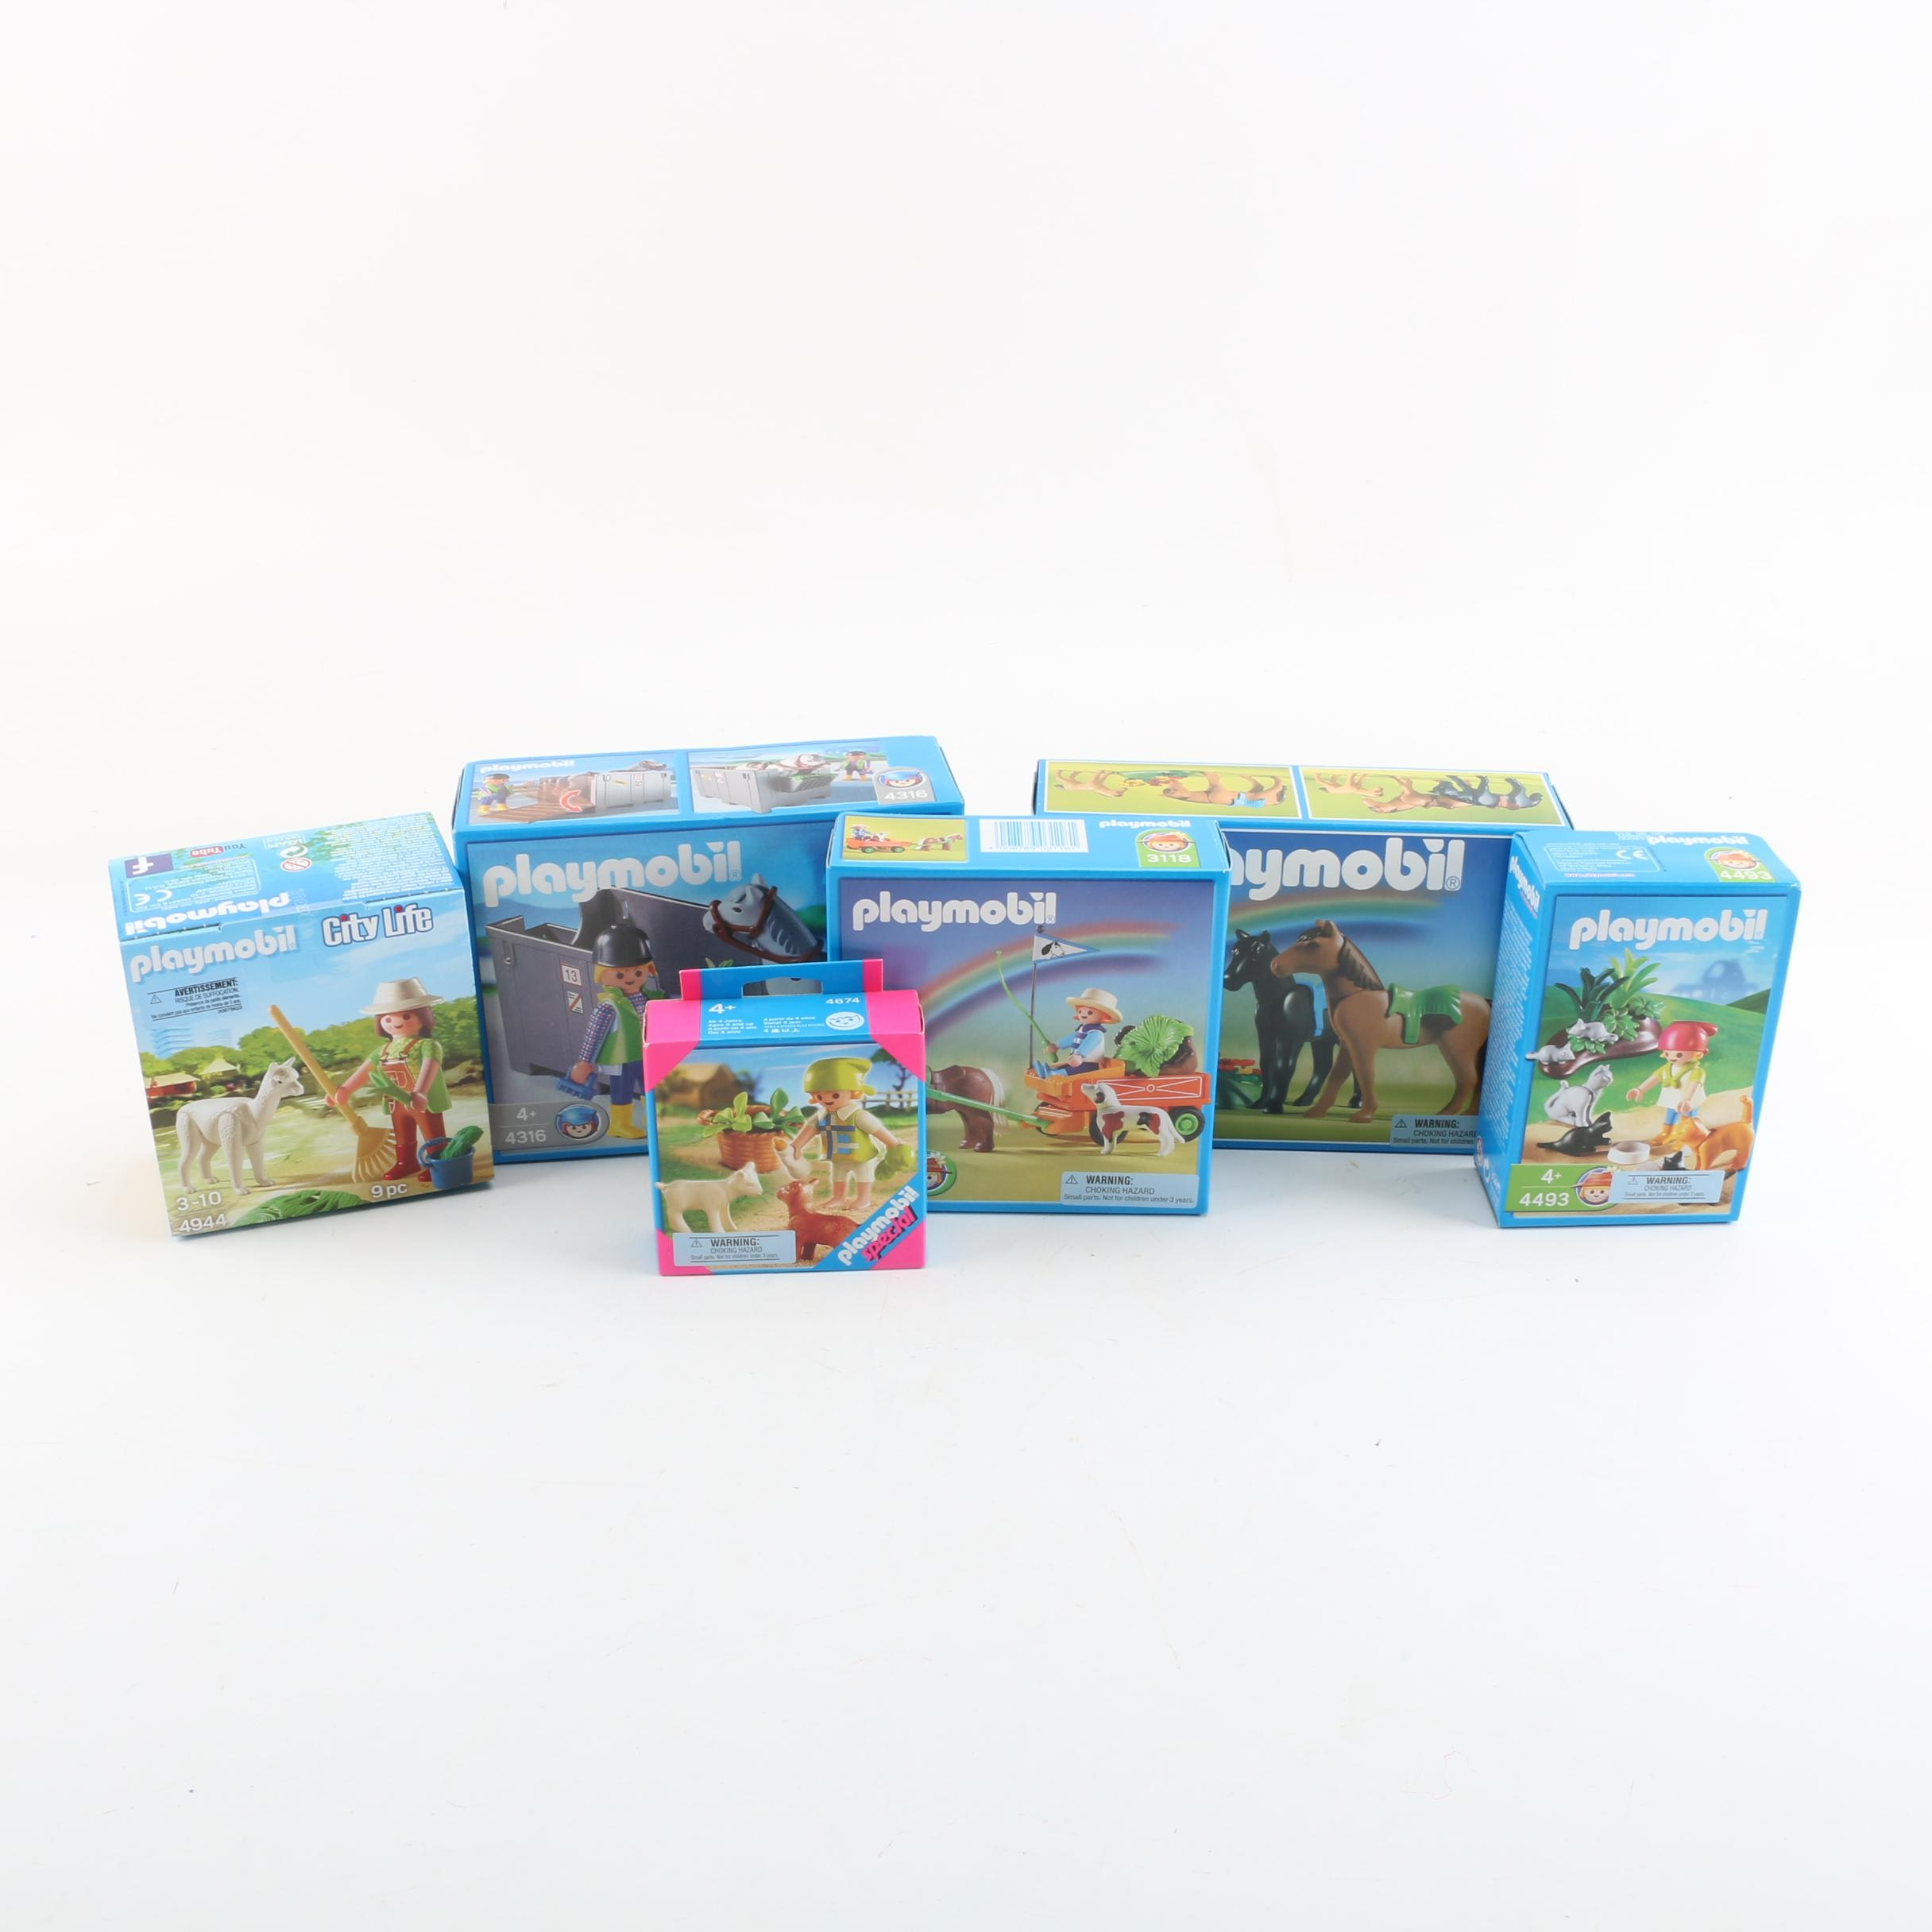 Playmobil Country and Pet Themed Sets